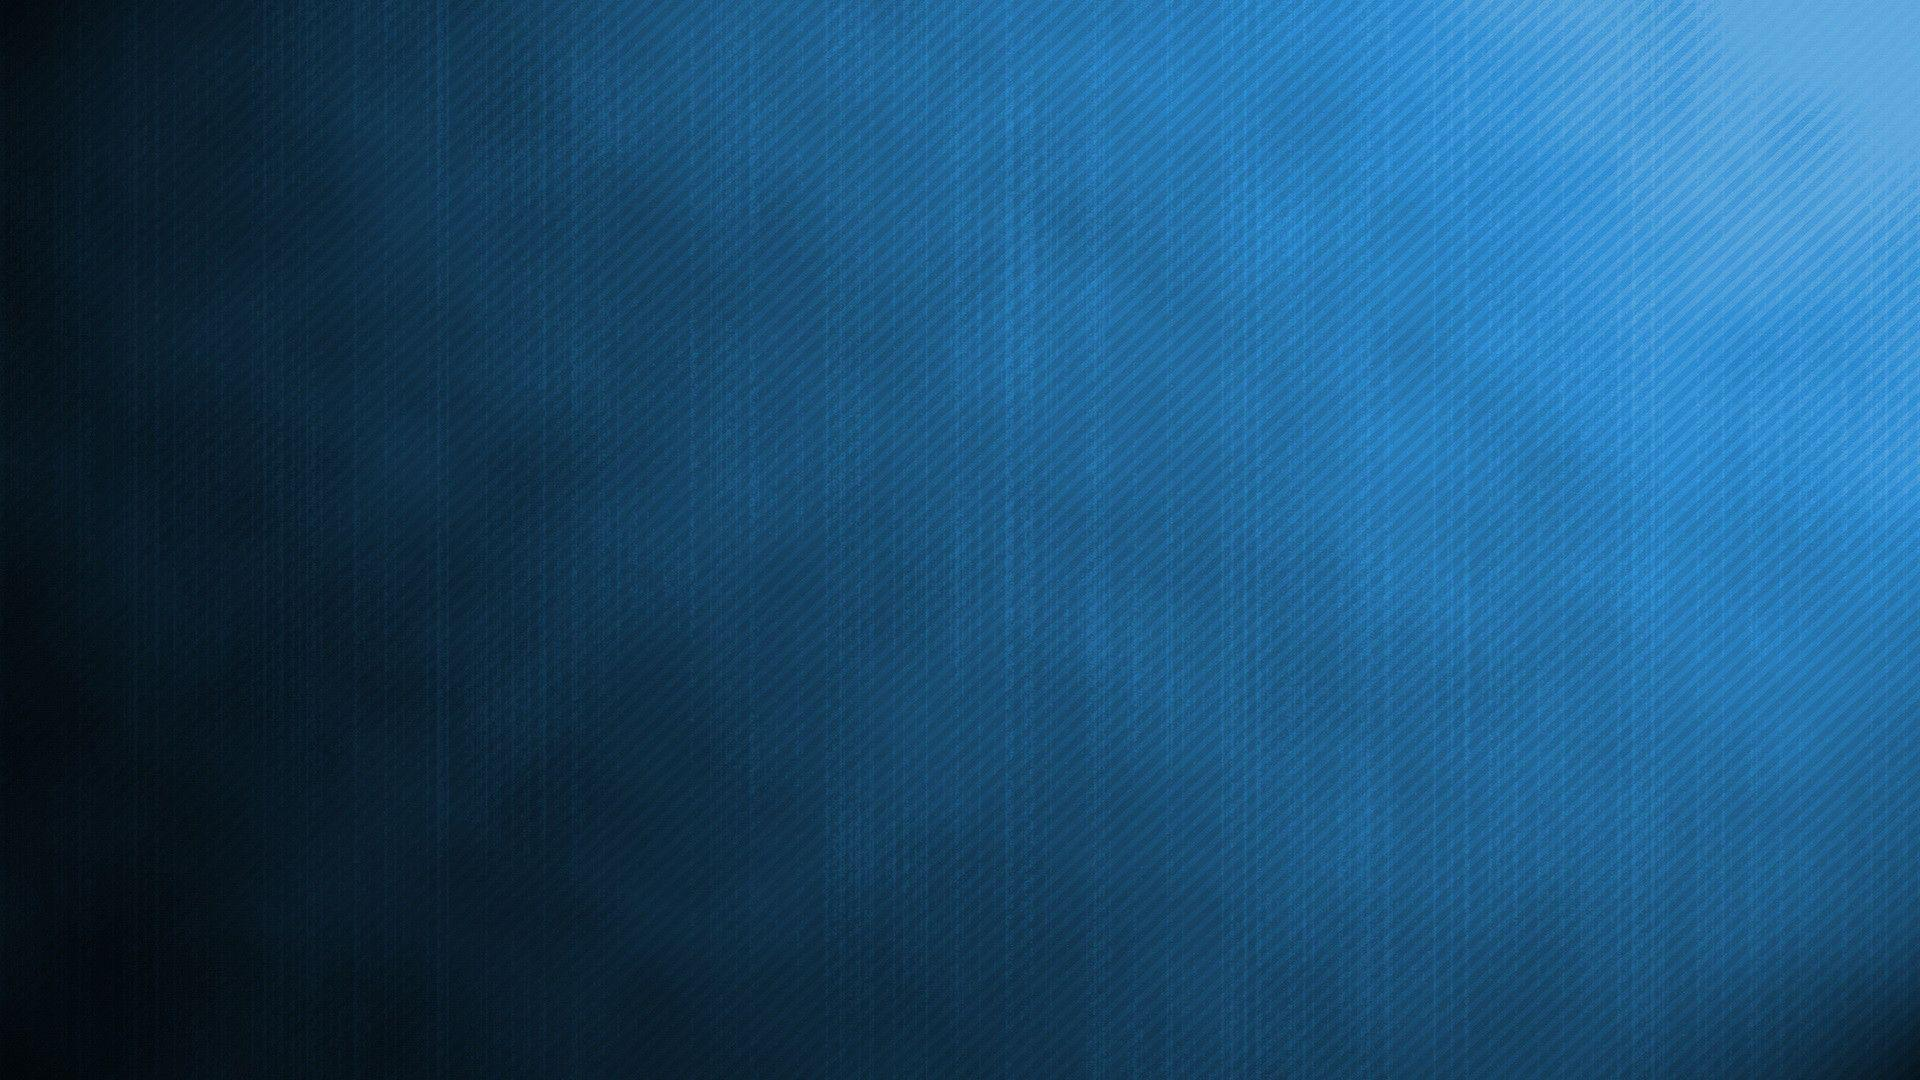 half blue wallpaper half black full hd abstract high resolution